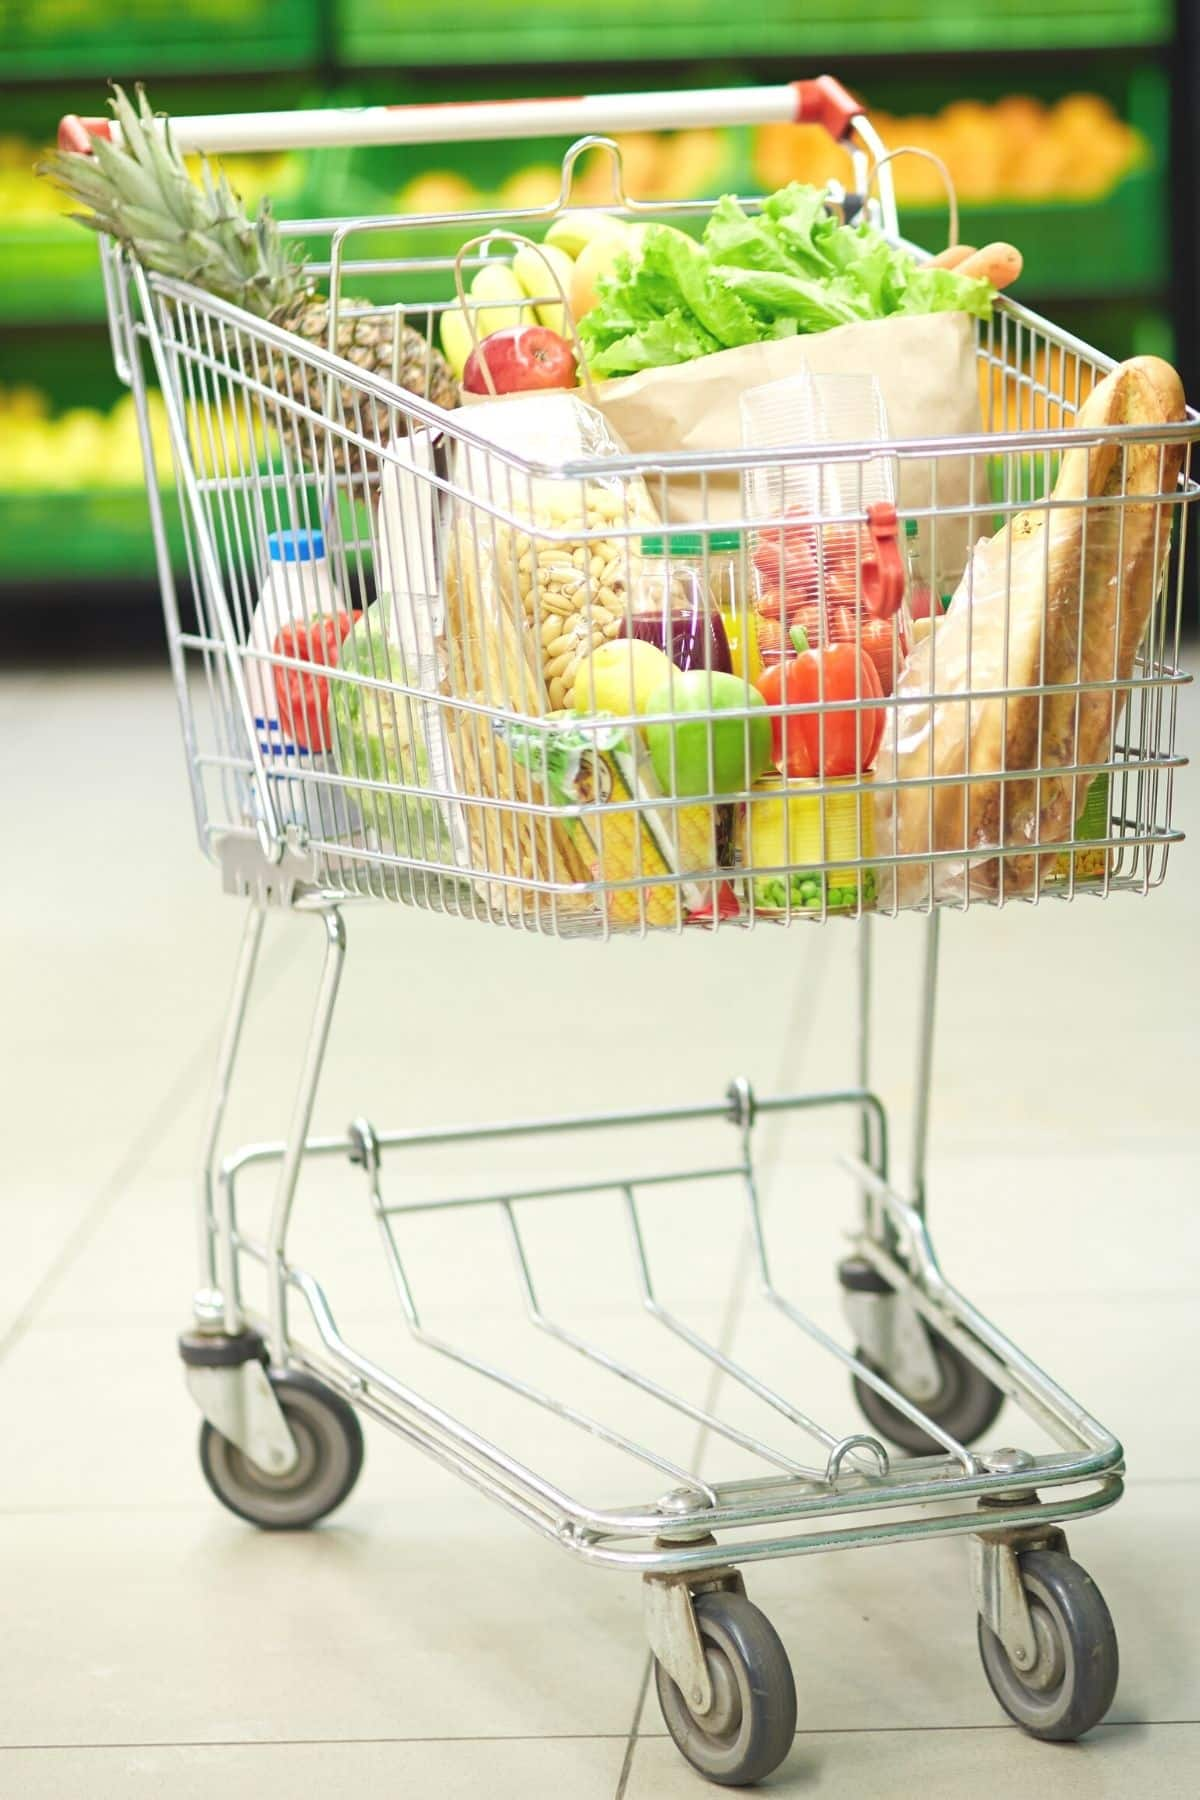 grocery cart filled with healthy foods